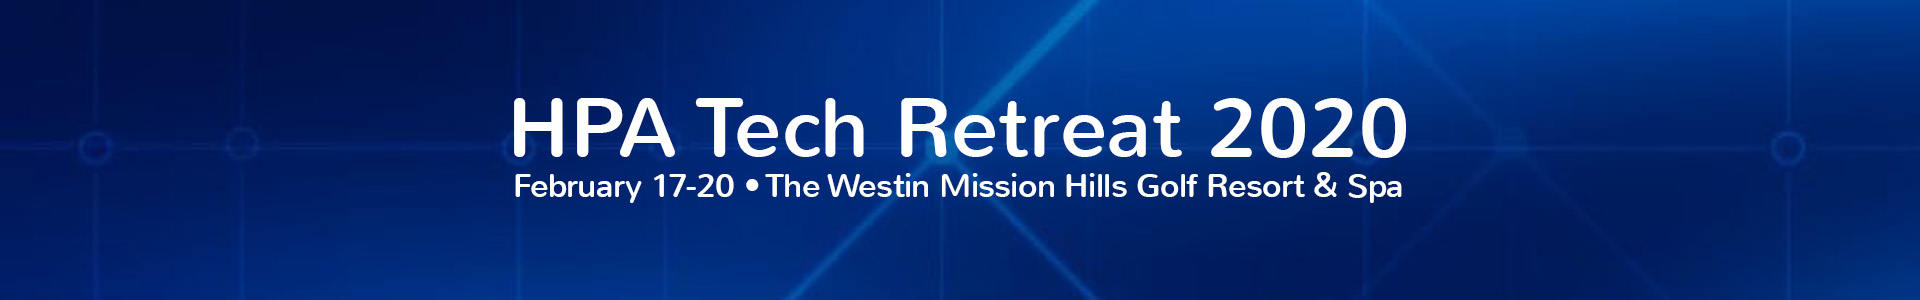 2020 HPA Tech Retreat